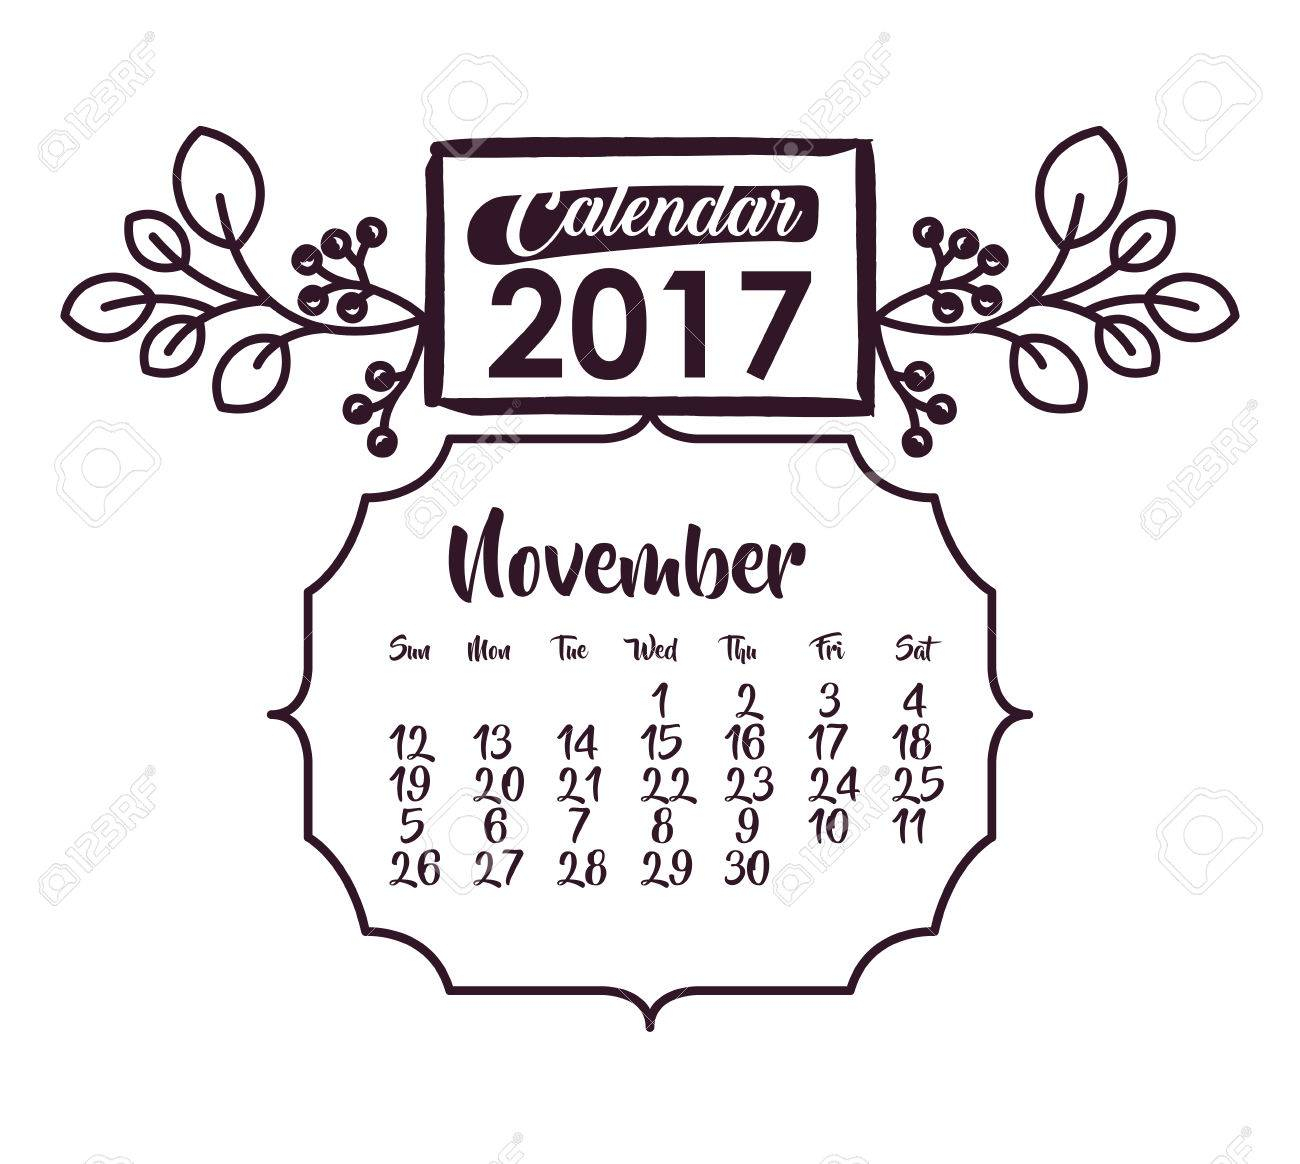 November Of 2017 Icon. Calendar Planner And Decoration Theme regarding November Decorated Calendar